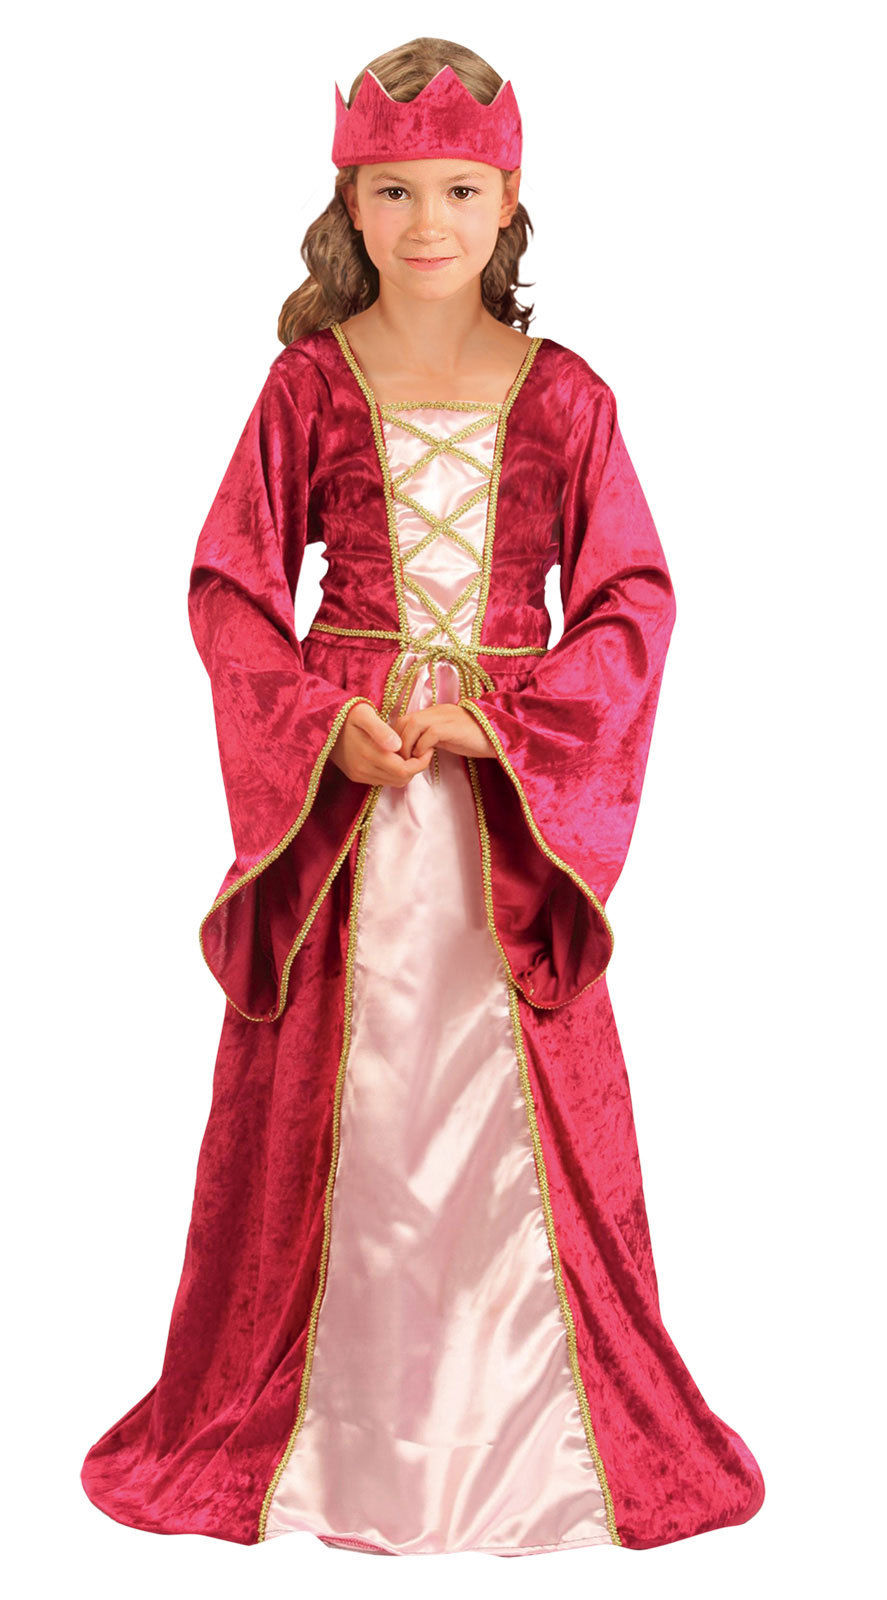 Medieval Tudor Girl Renaissance Princess Queen Costume Gown Outfit ...